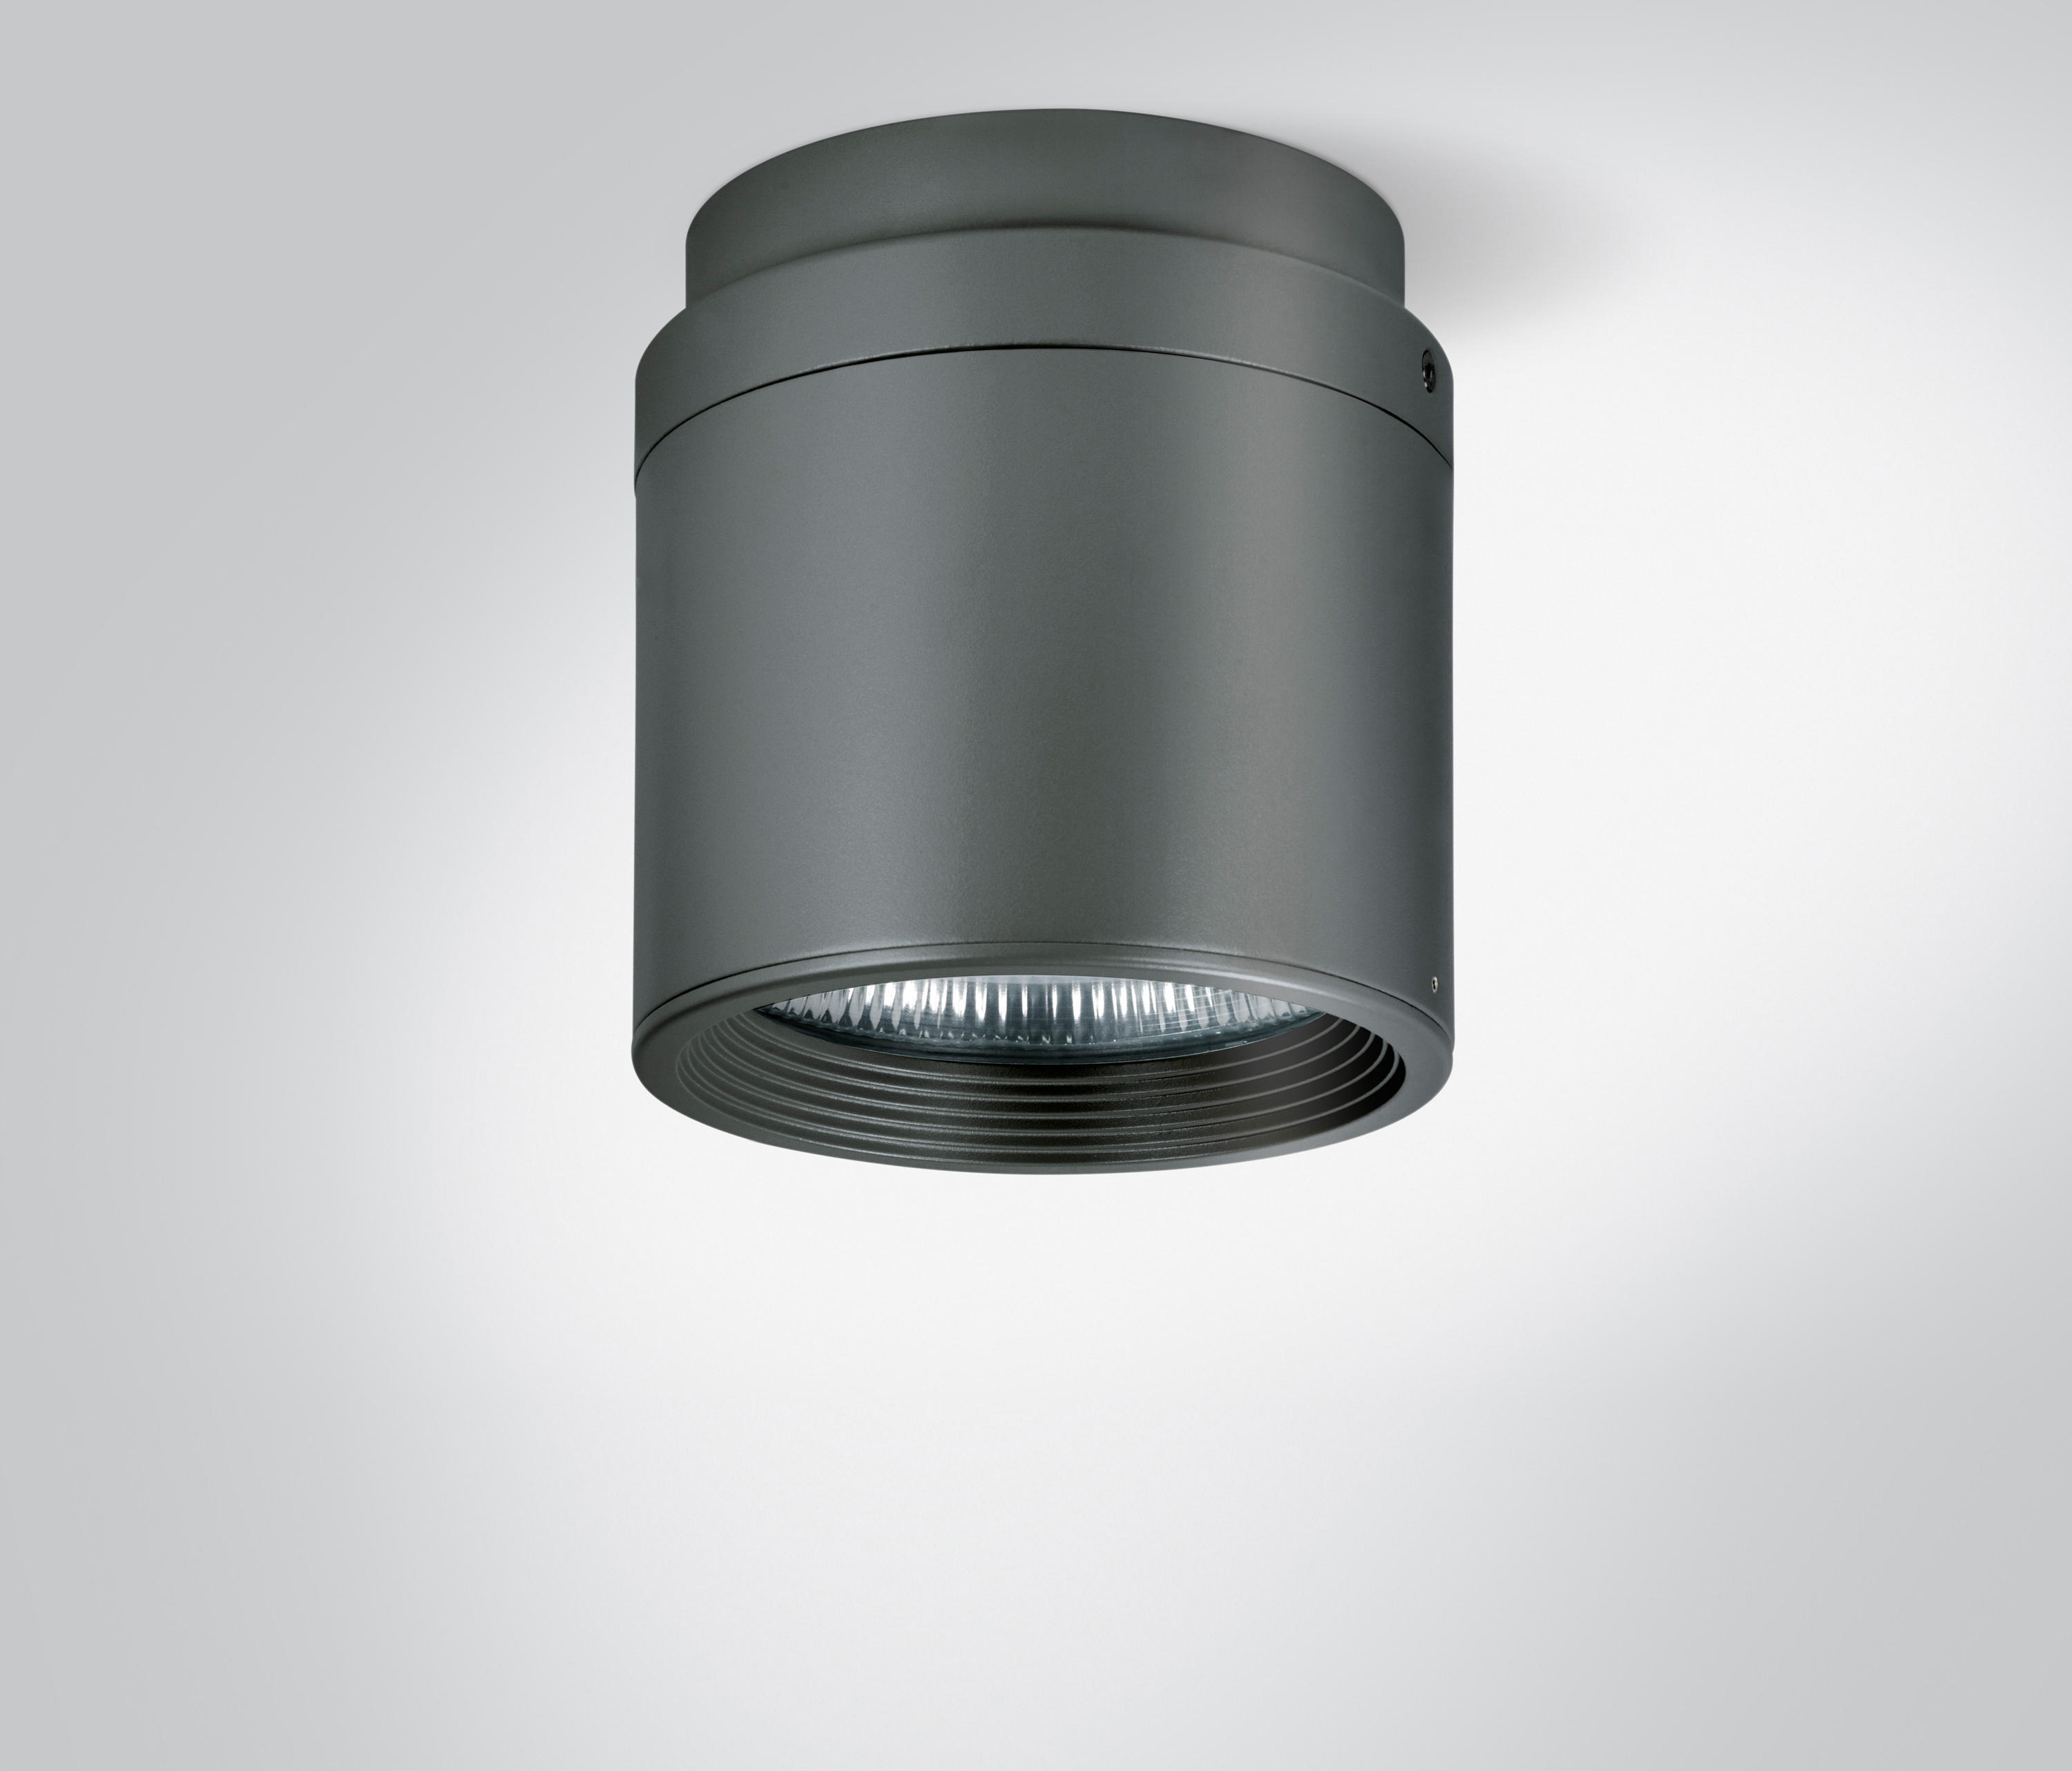 Intis 210 Ceiling Antracite Outdoor Lights From